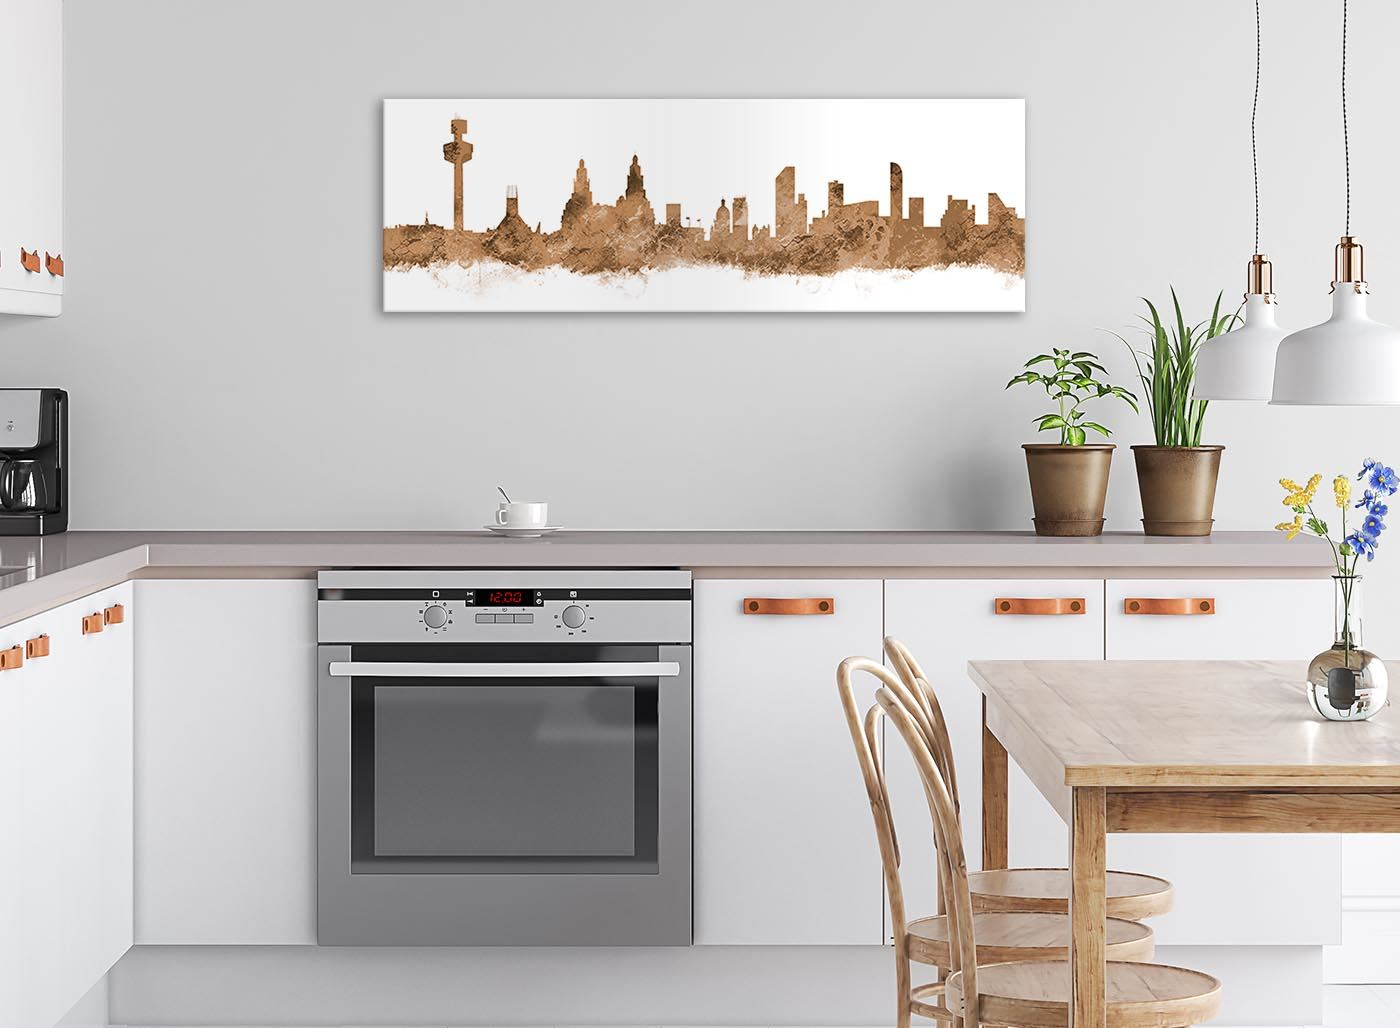 94cm wide Liverpool Skyline Canvas Wall Art Print 17 Colours Available